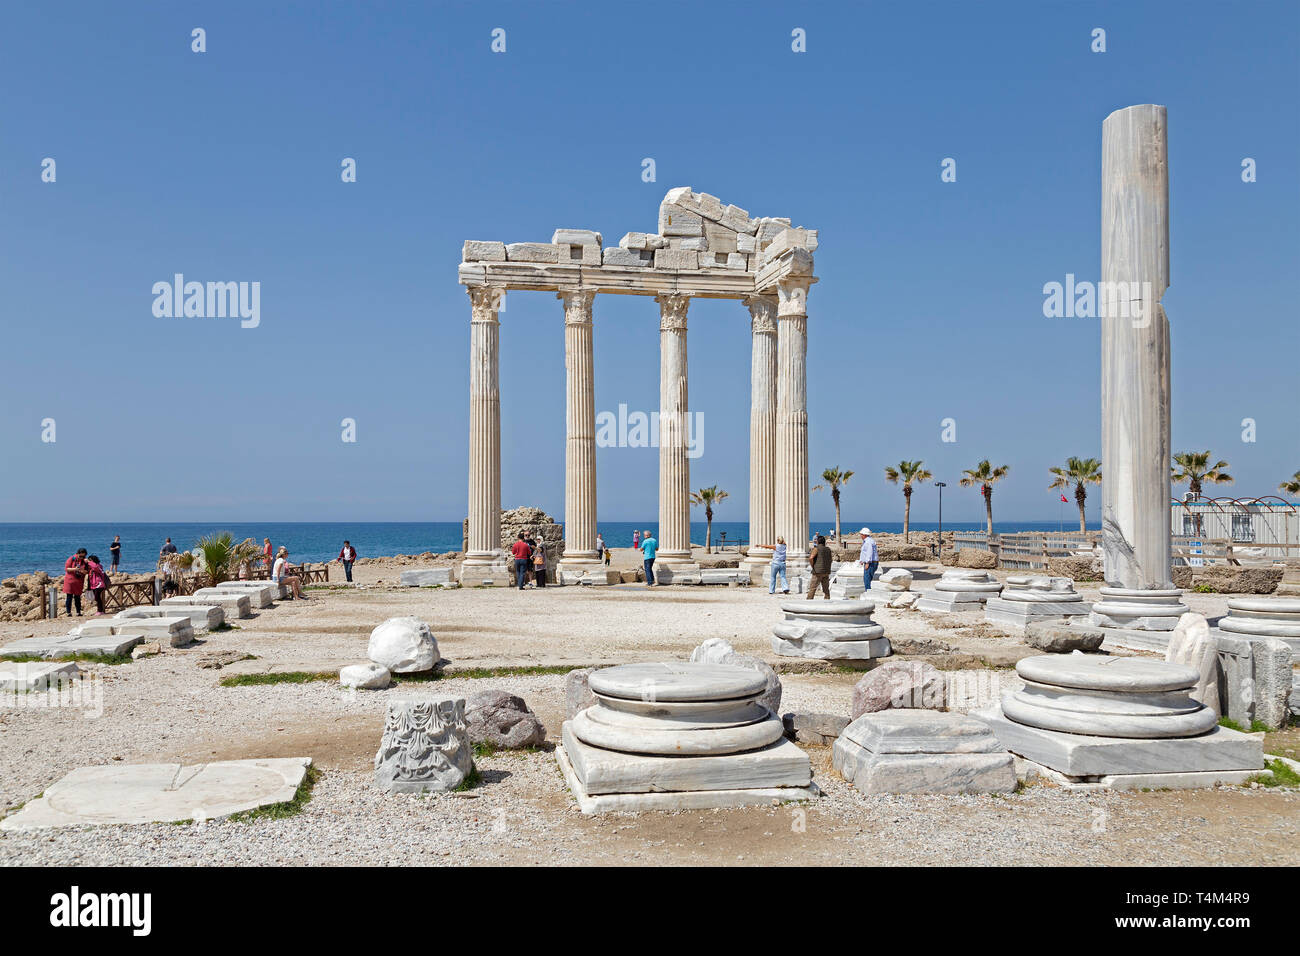 remains of the Temple of Apollo, Side, Province Antalya, Turkey - Stock Image